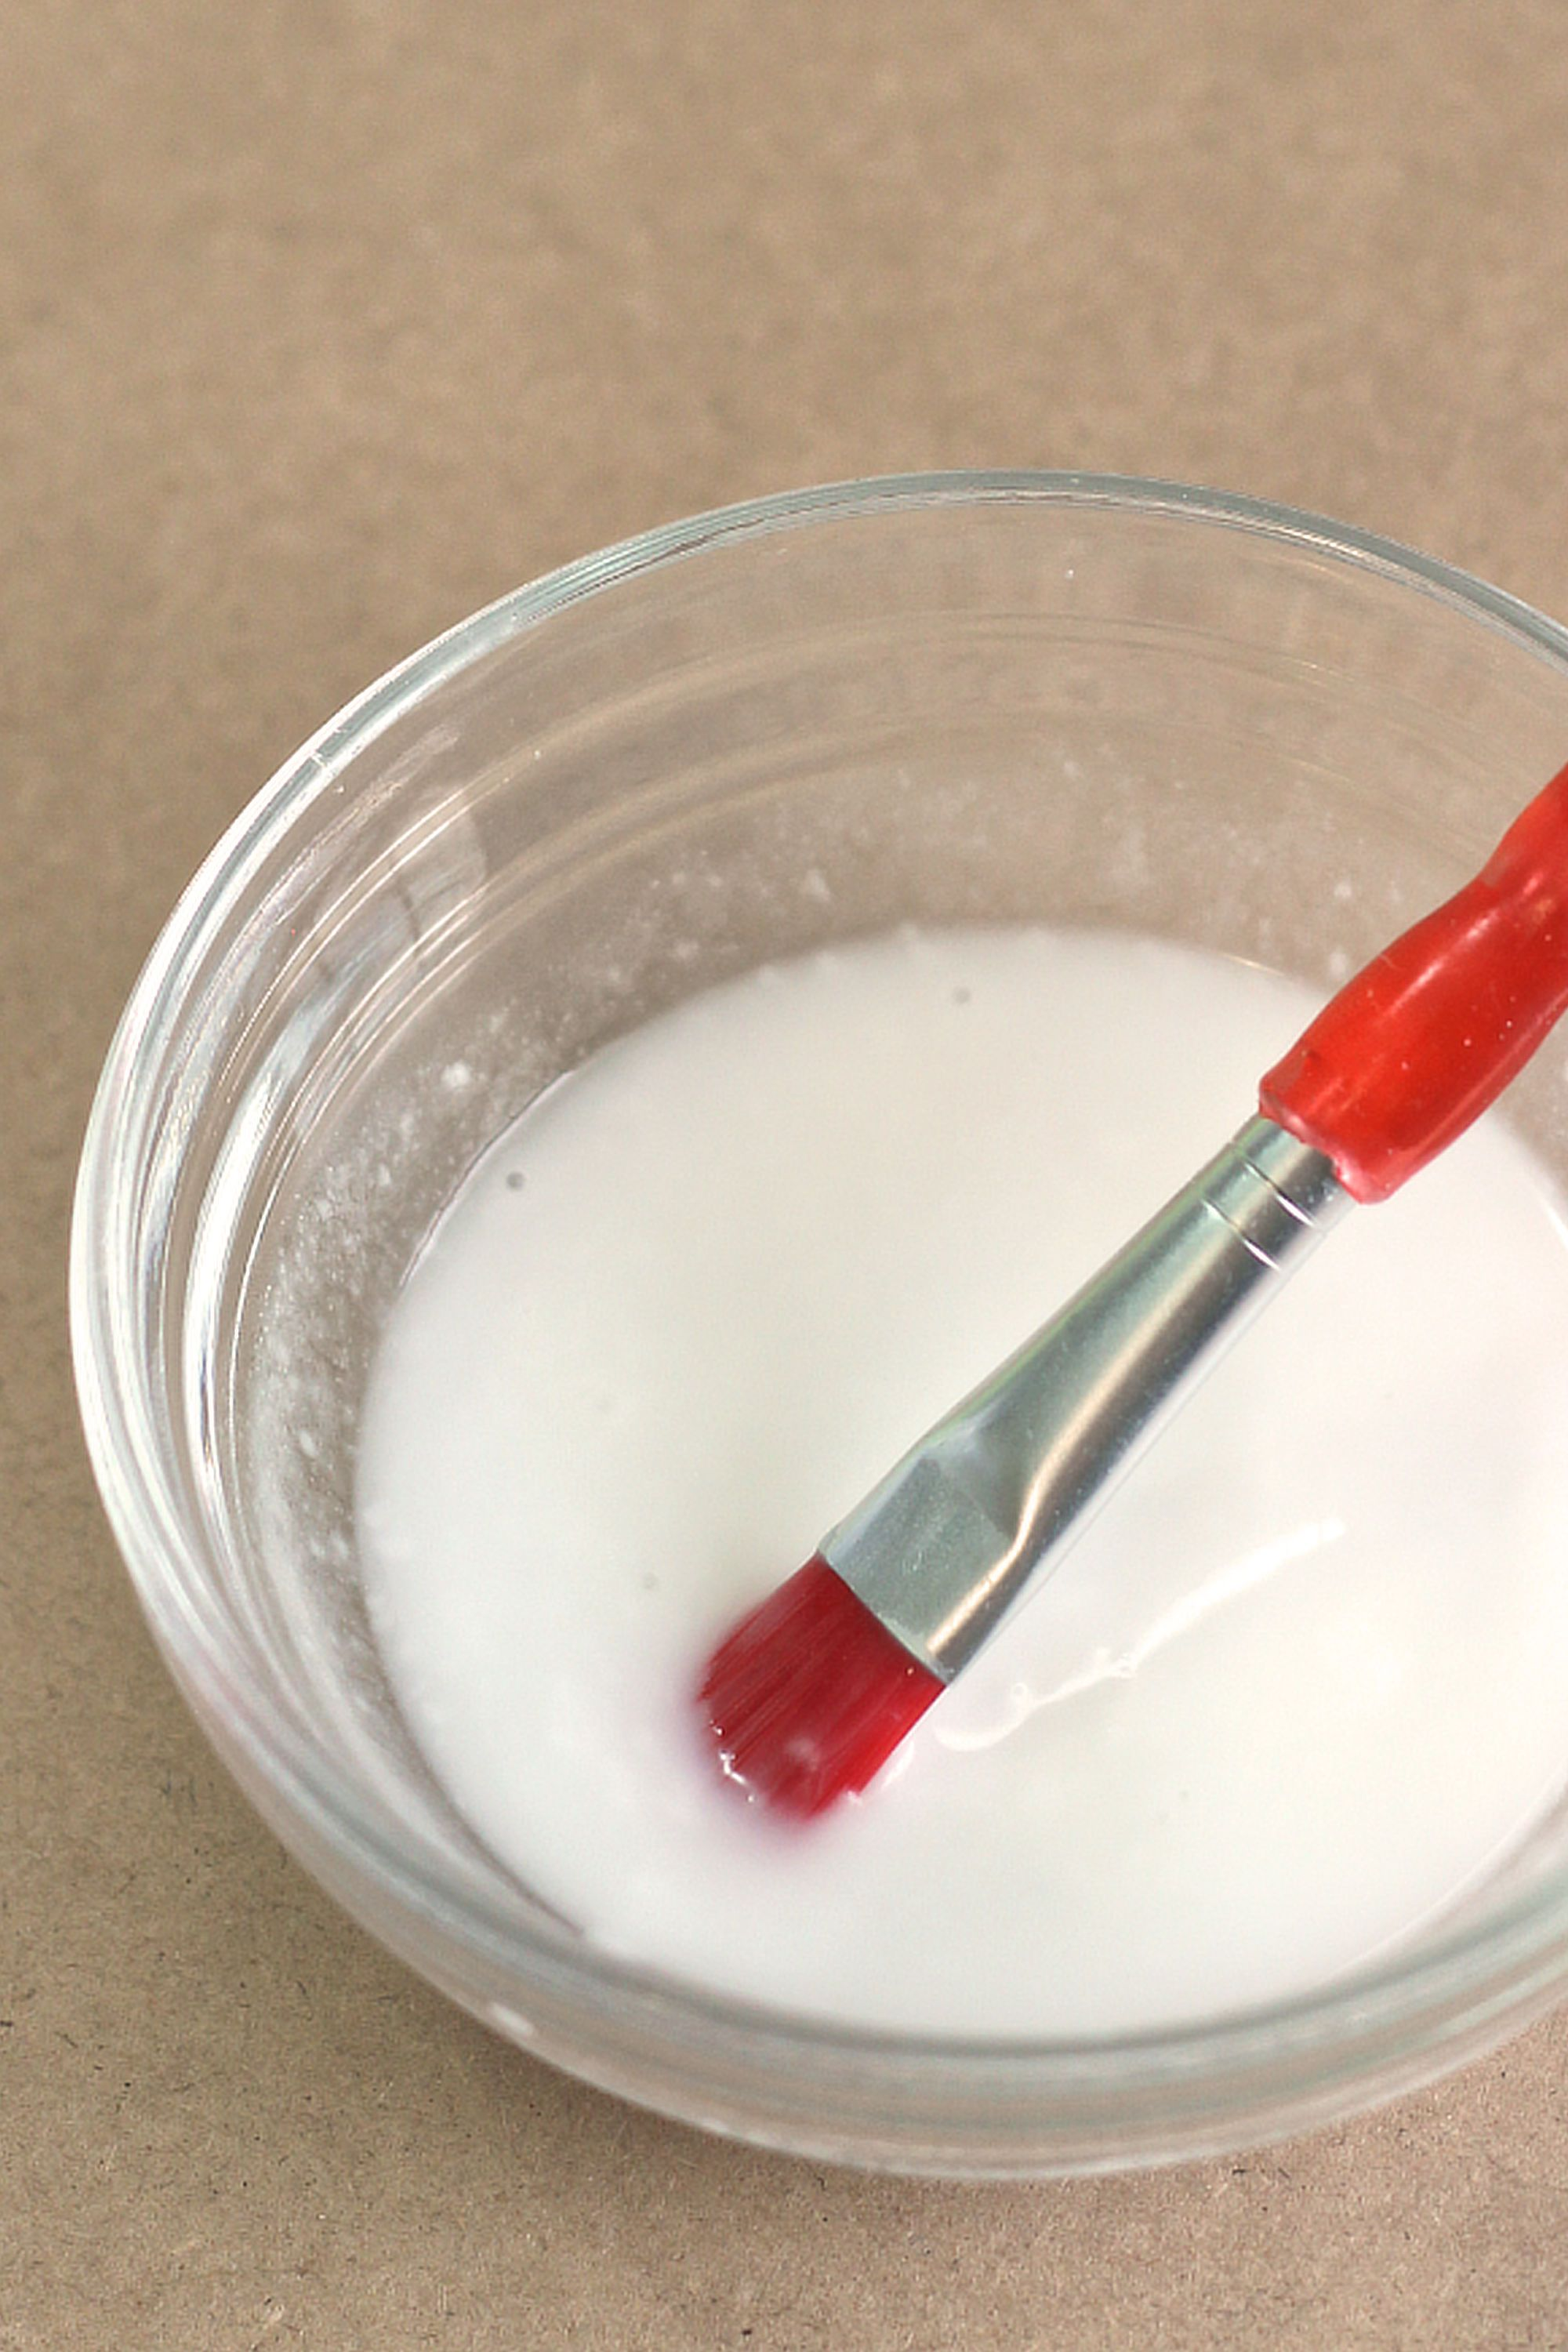 Homemade glue in clear bowl with paintbrush